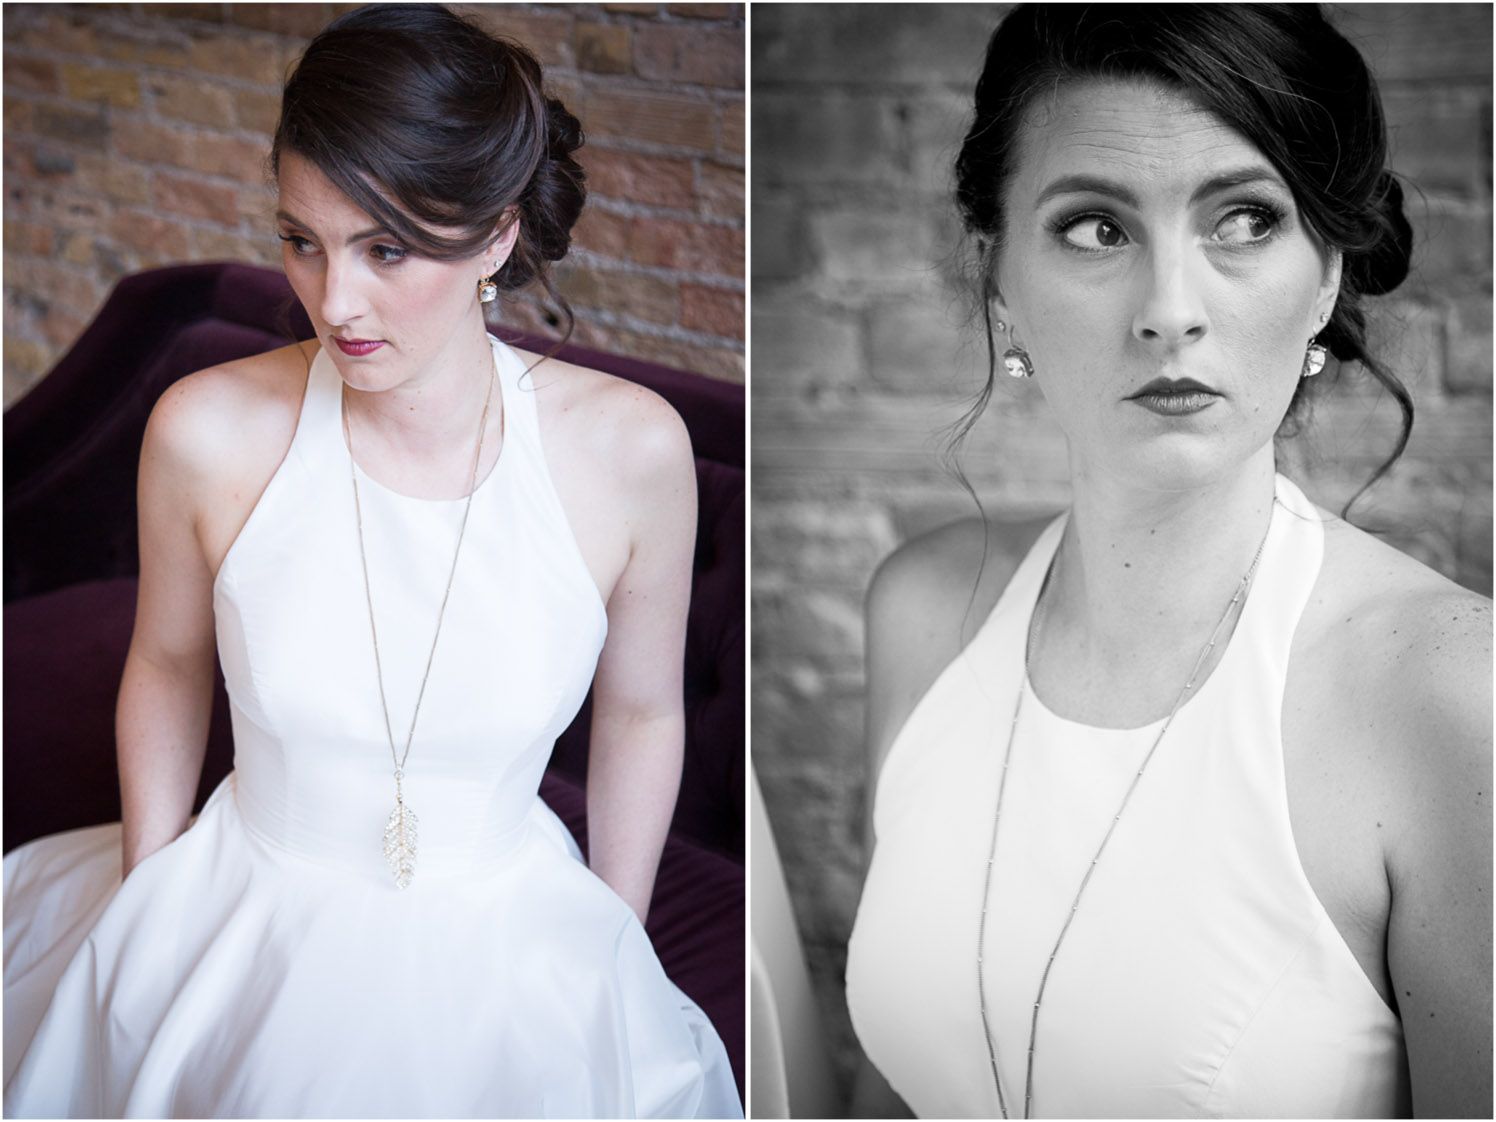 09-bride-halter-bridal-gown-black-and-white-brick-wall-loring-social-minneapolis-mahonen-photography.jpg